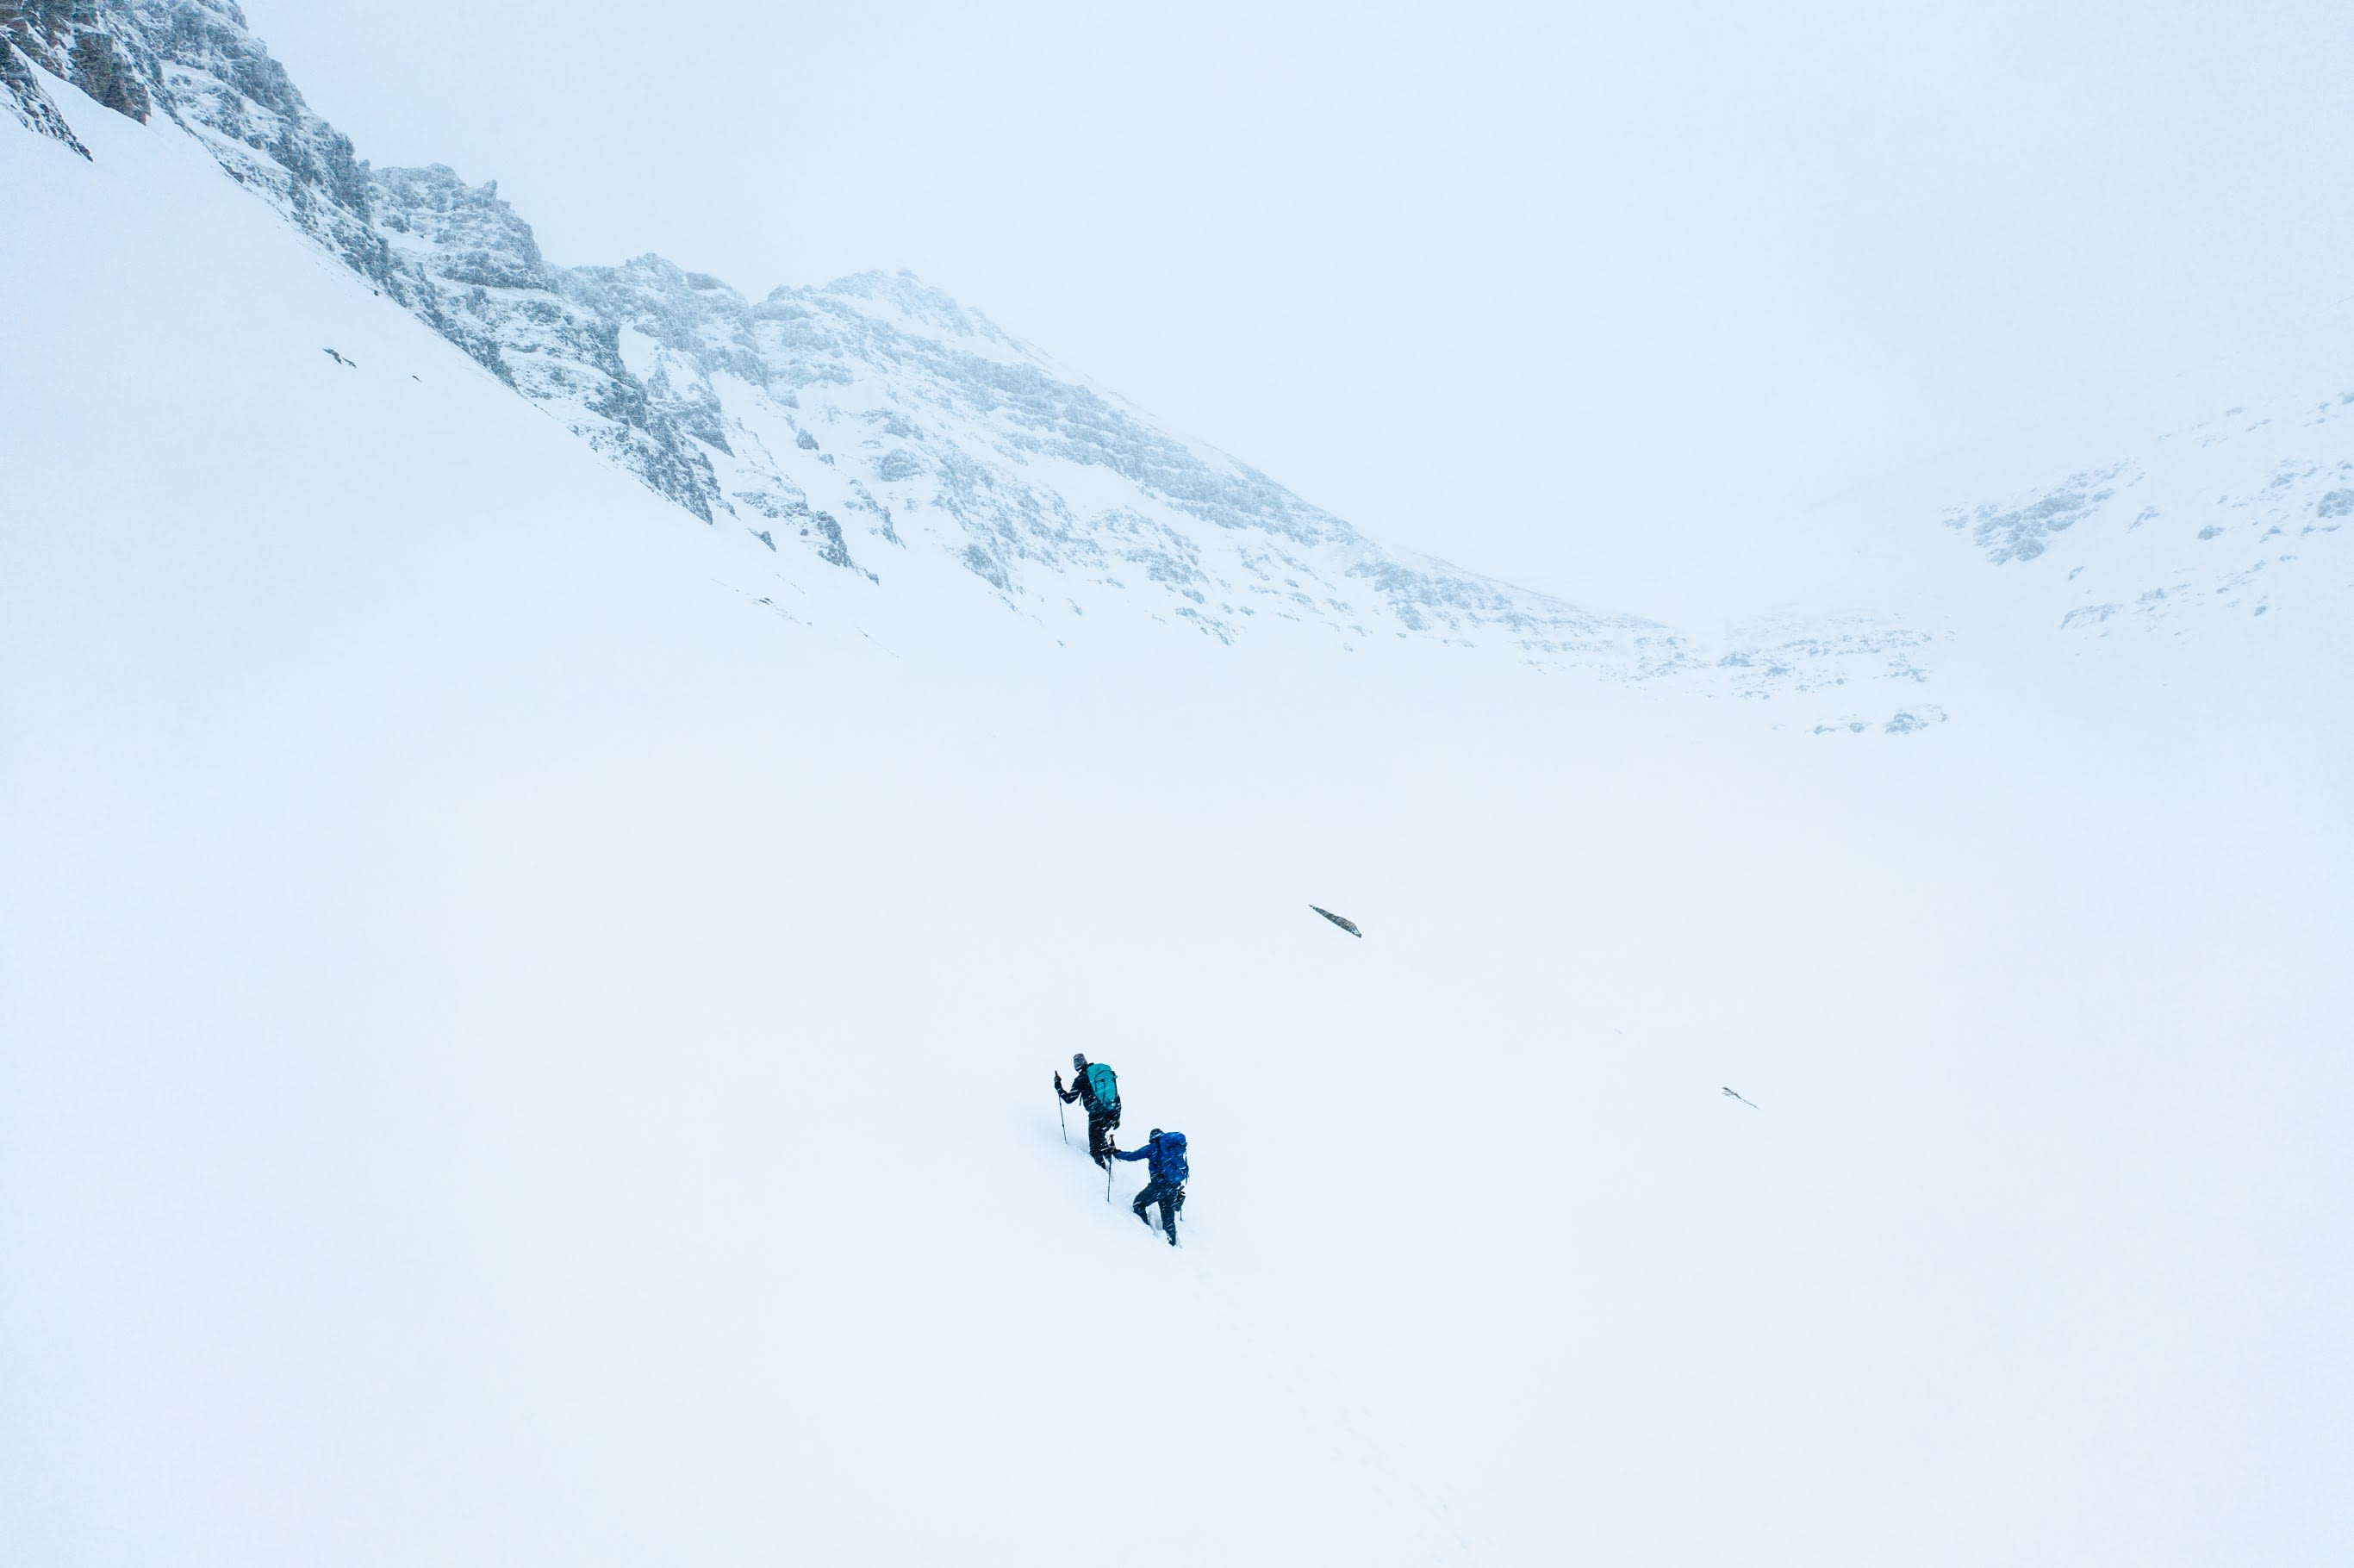 two people wearing blue and black clothing hiking through a mountaineous region in Iceland